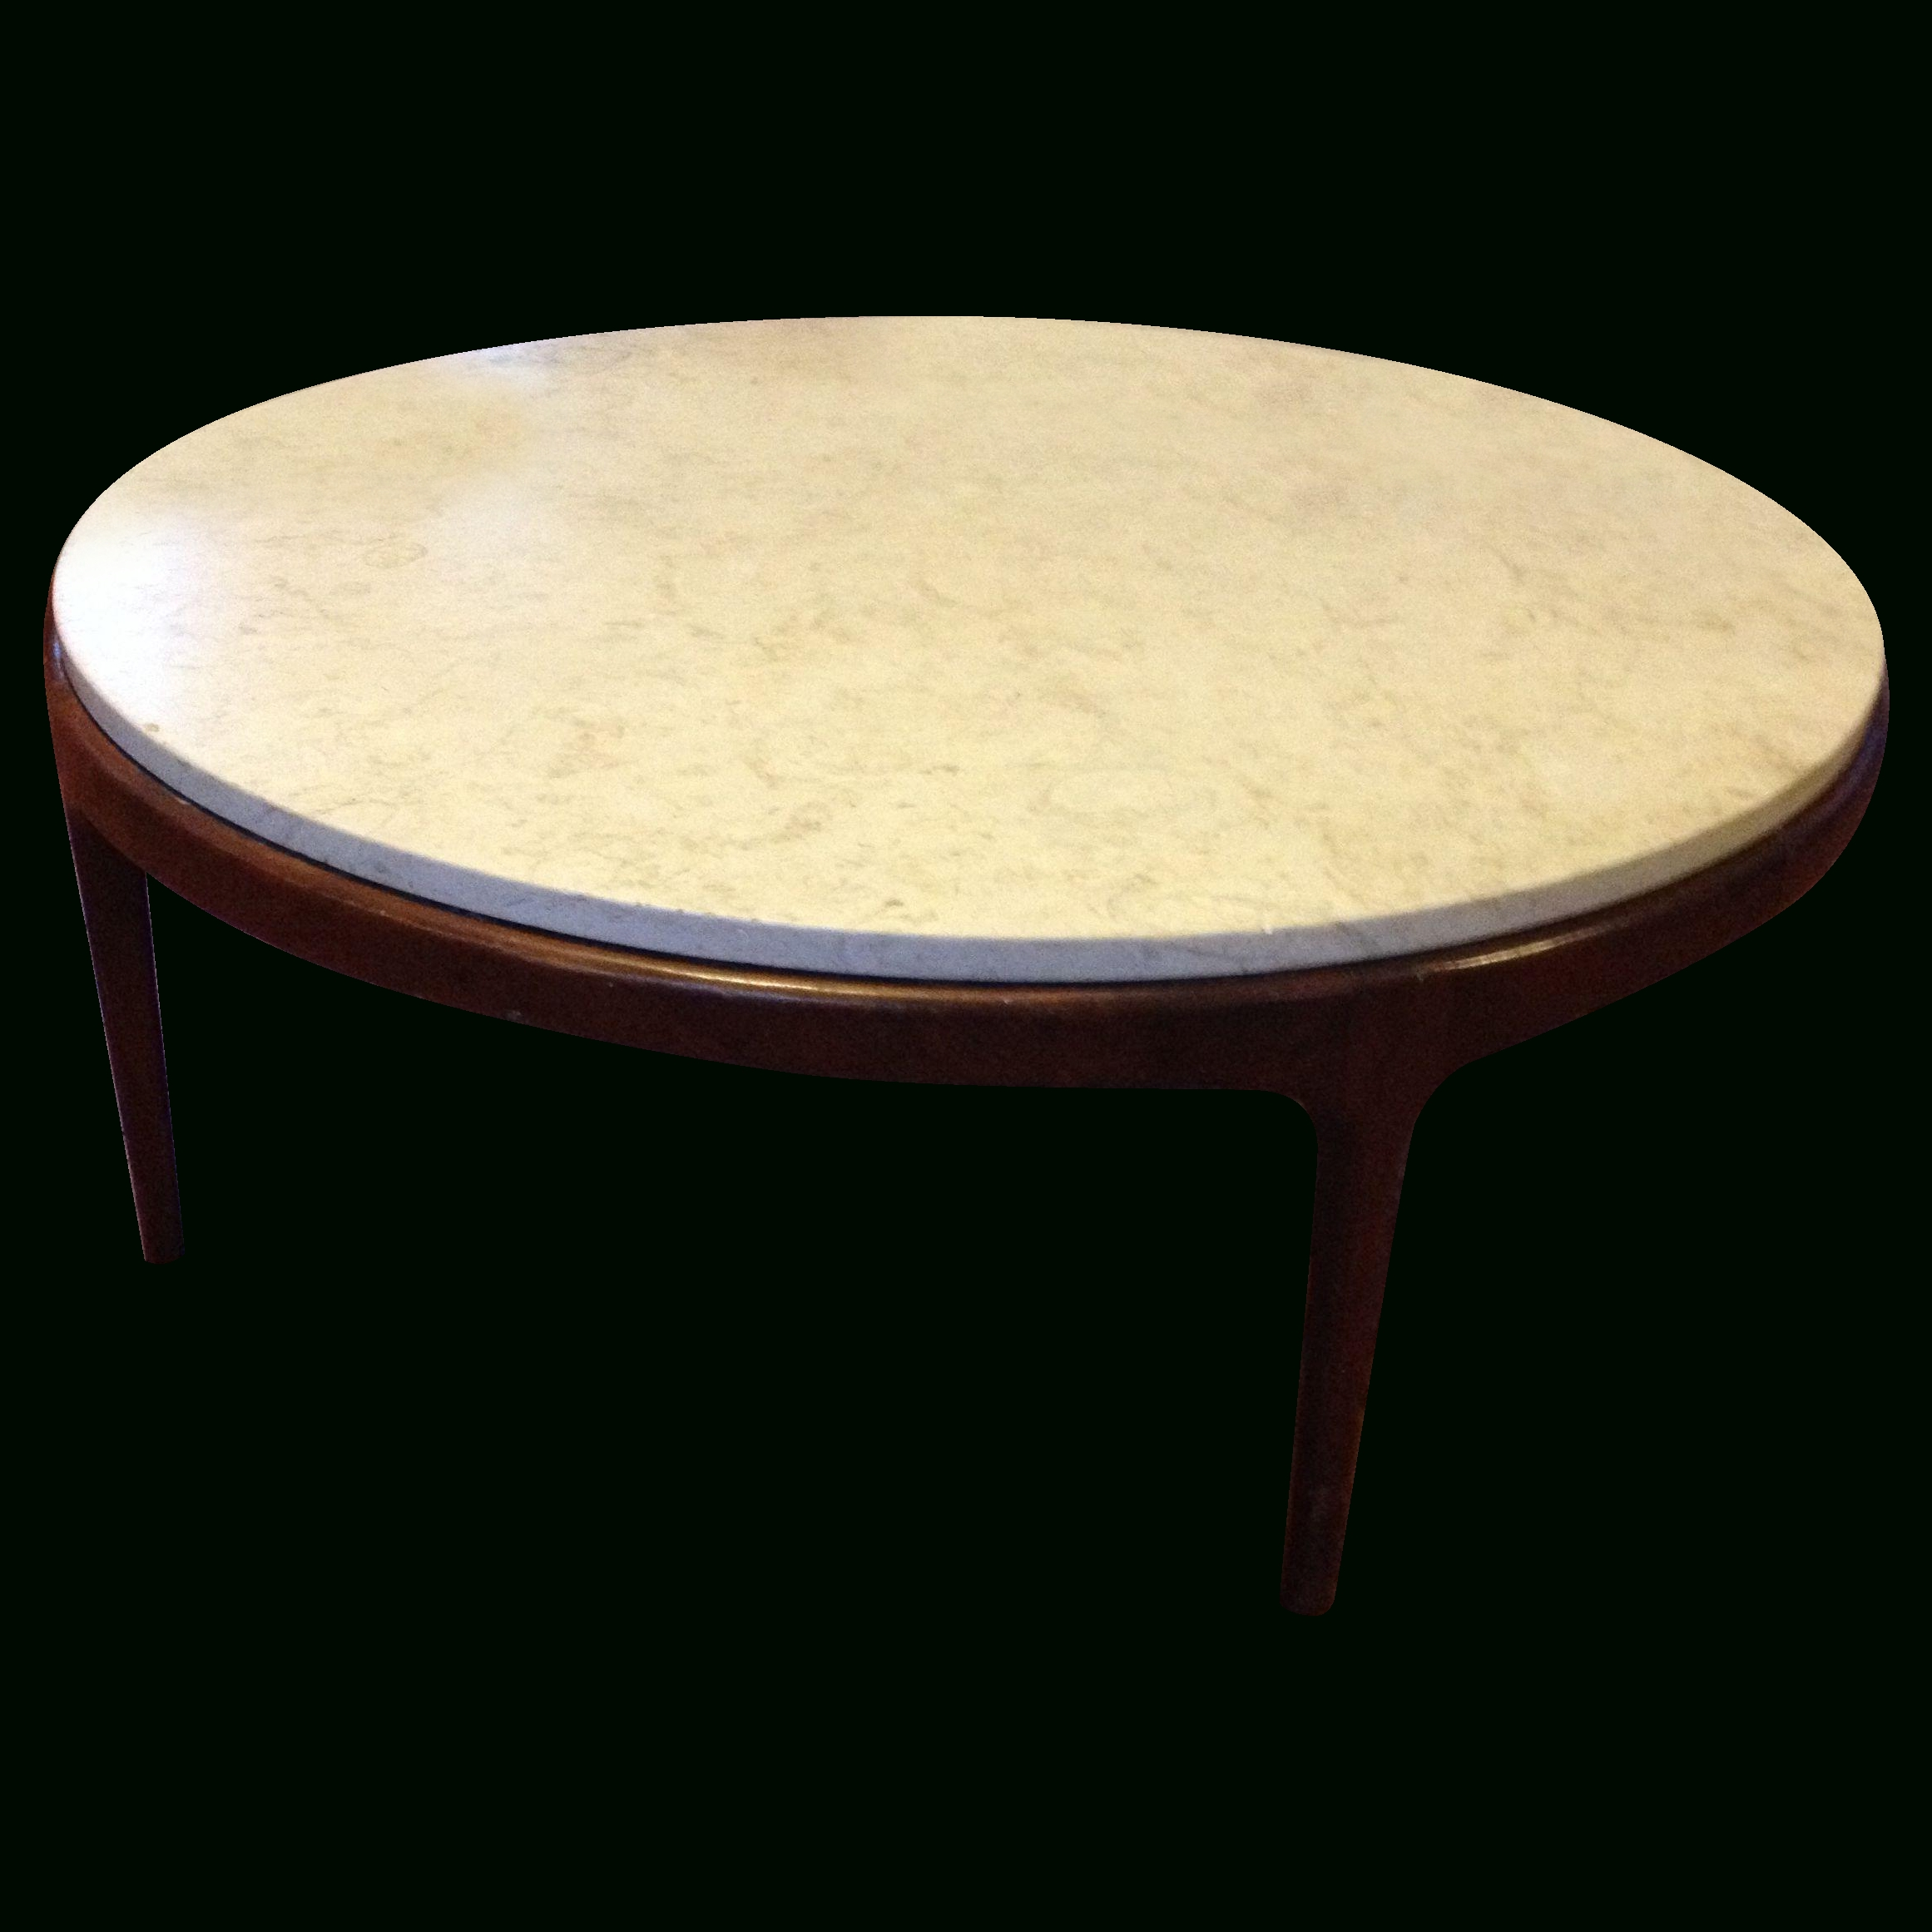 Mid-Century Modern Danish Marble Top Coffee Table On Chairish throughout Mid-Century Modern Marble Coffee Tables (Image 21 of 30)